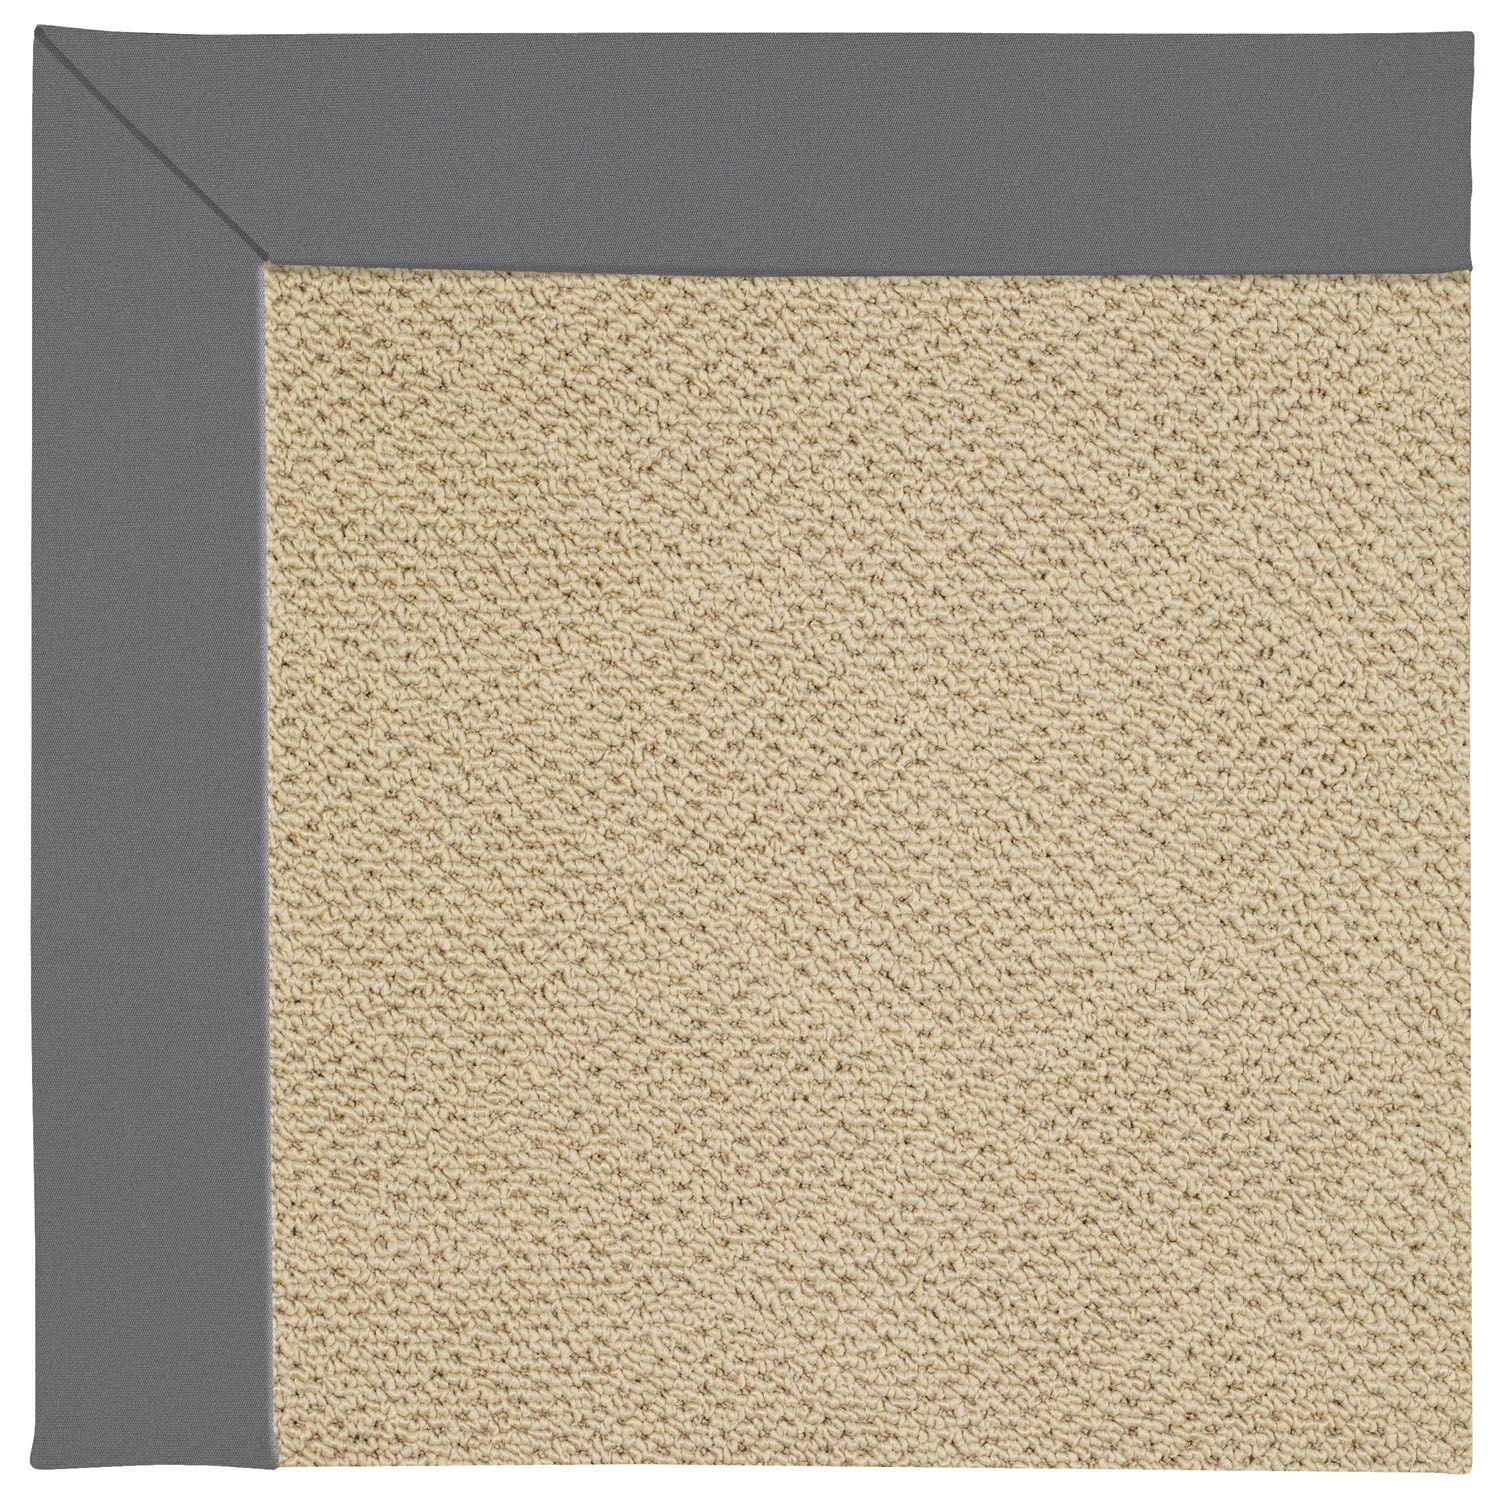 Lisle Machine Tufted Ash/Brown Indoor/Outdoor Area Rug Rug Size: Round 12' x 12'